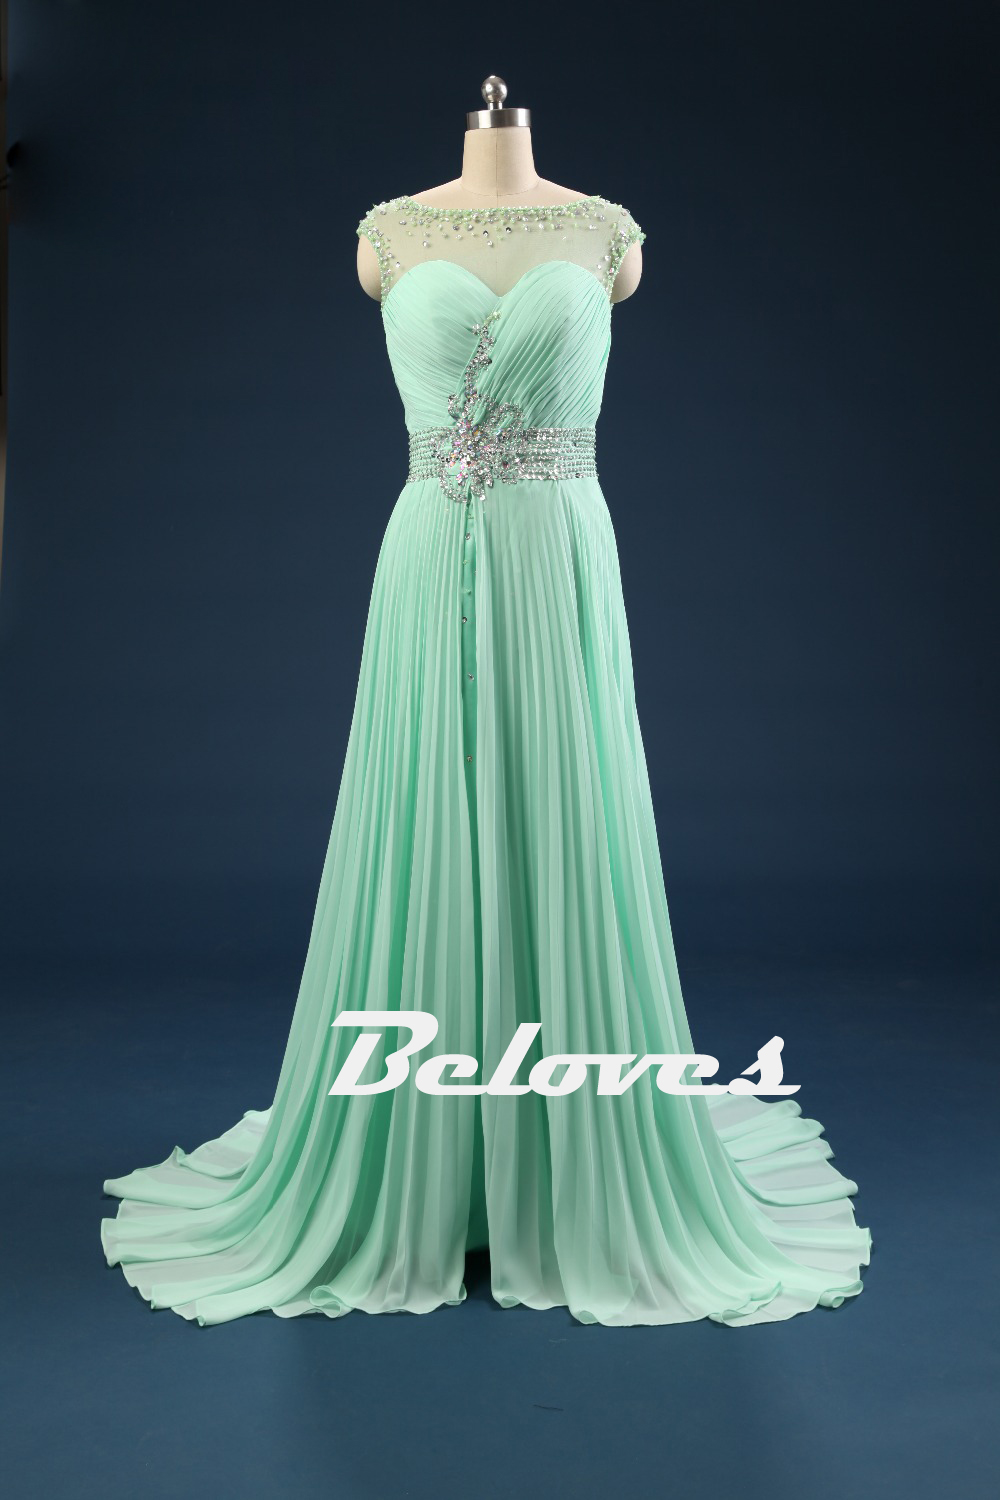 Light Green Chiffon Pleated Prom Dress With Keyhole Back · Beloves ...